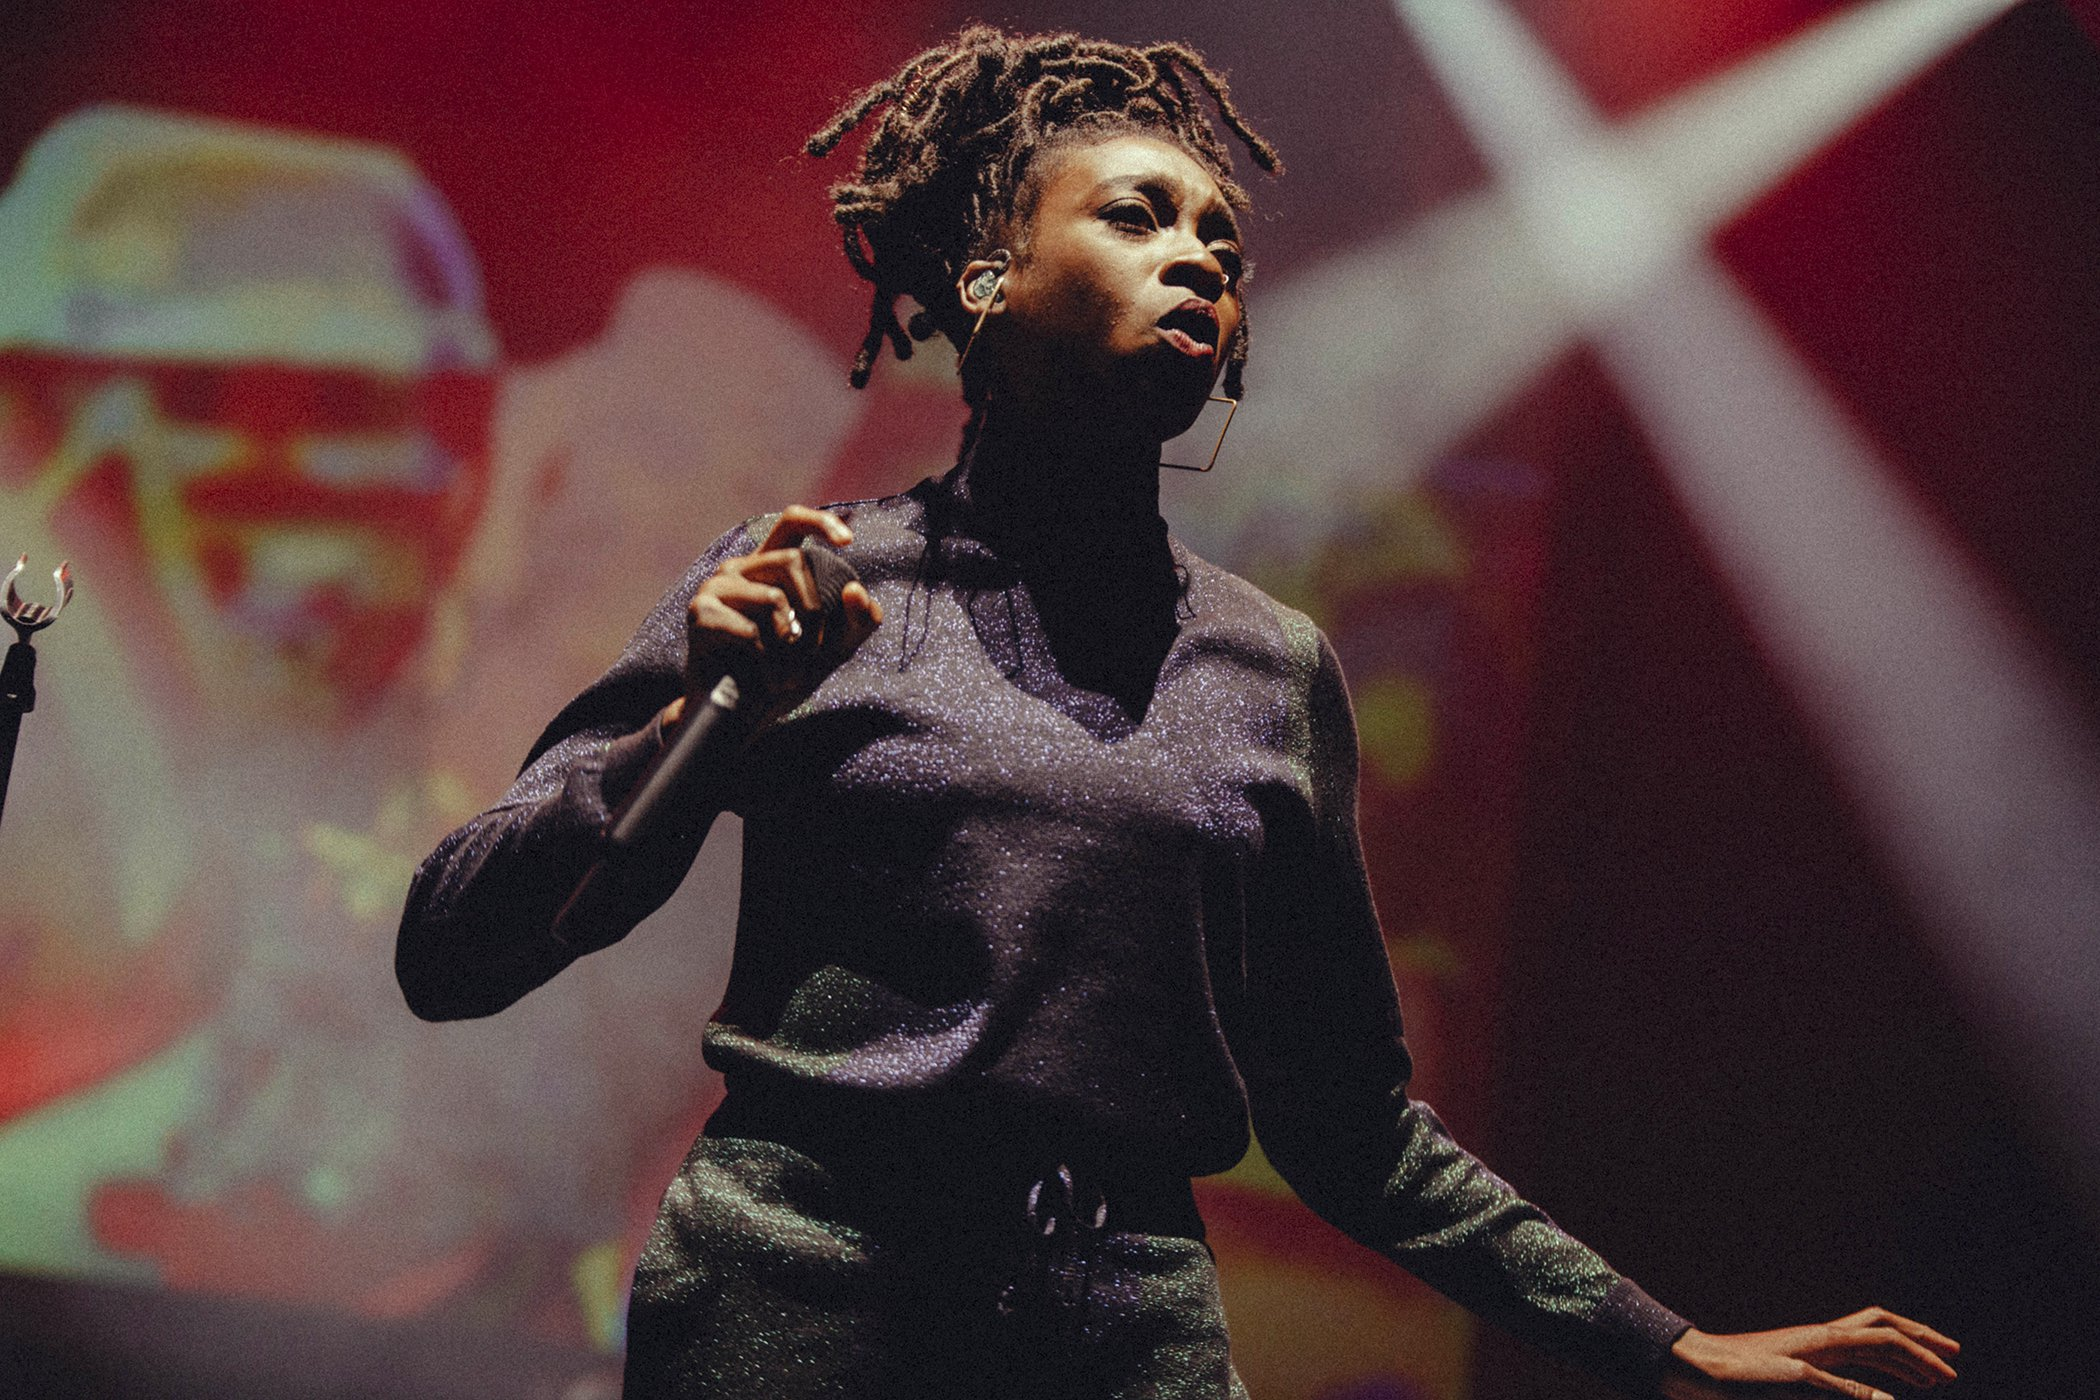 Little Simz performs on stage for Global Citizen Live London, at the O2 Academy Brixton on April 17, 2018 in London, England.